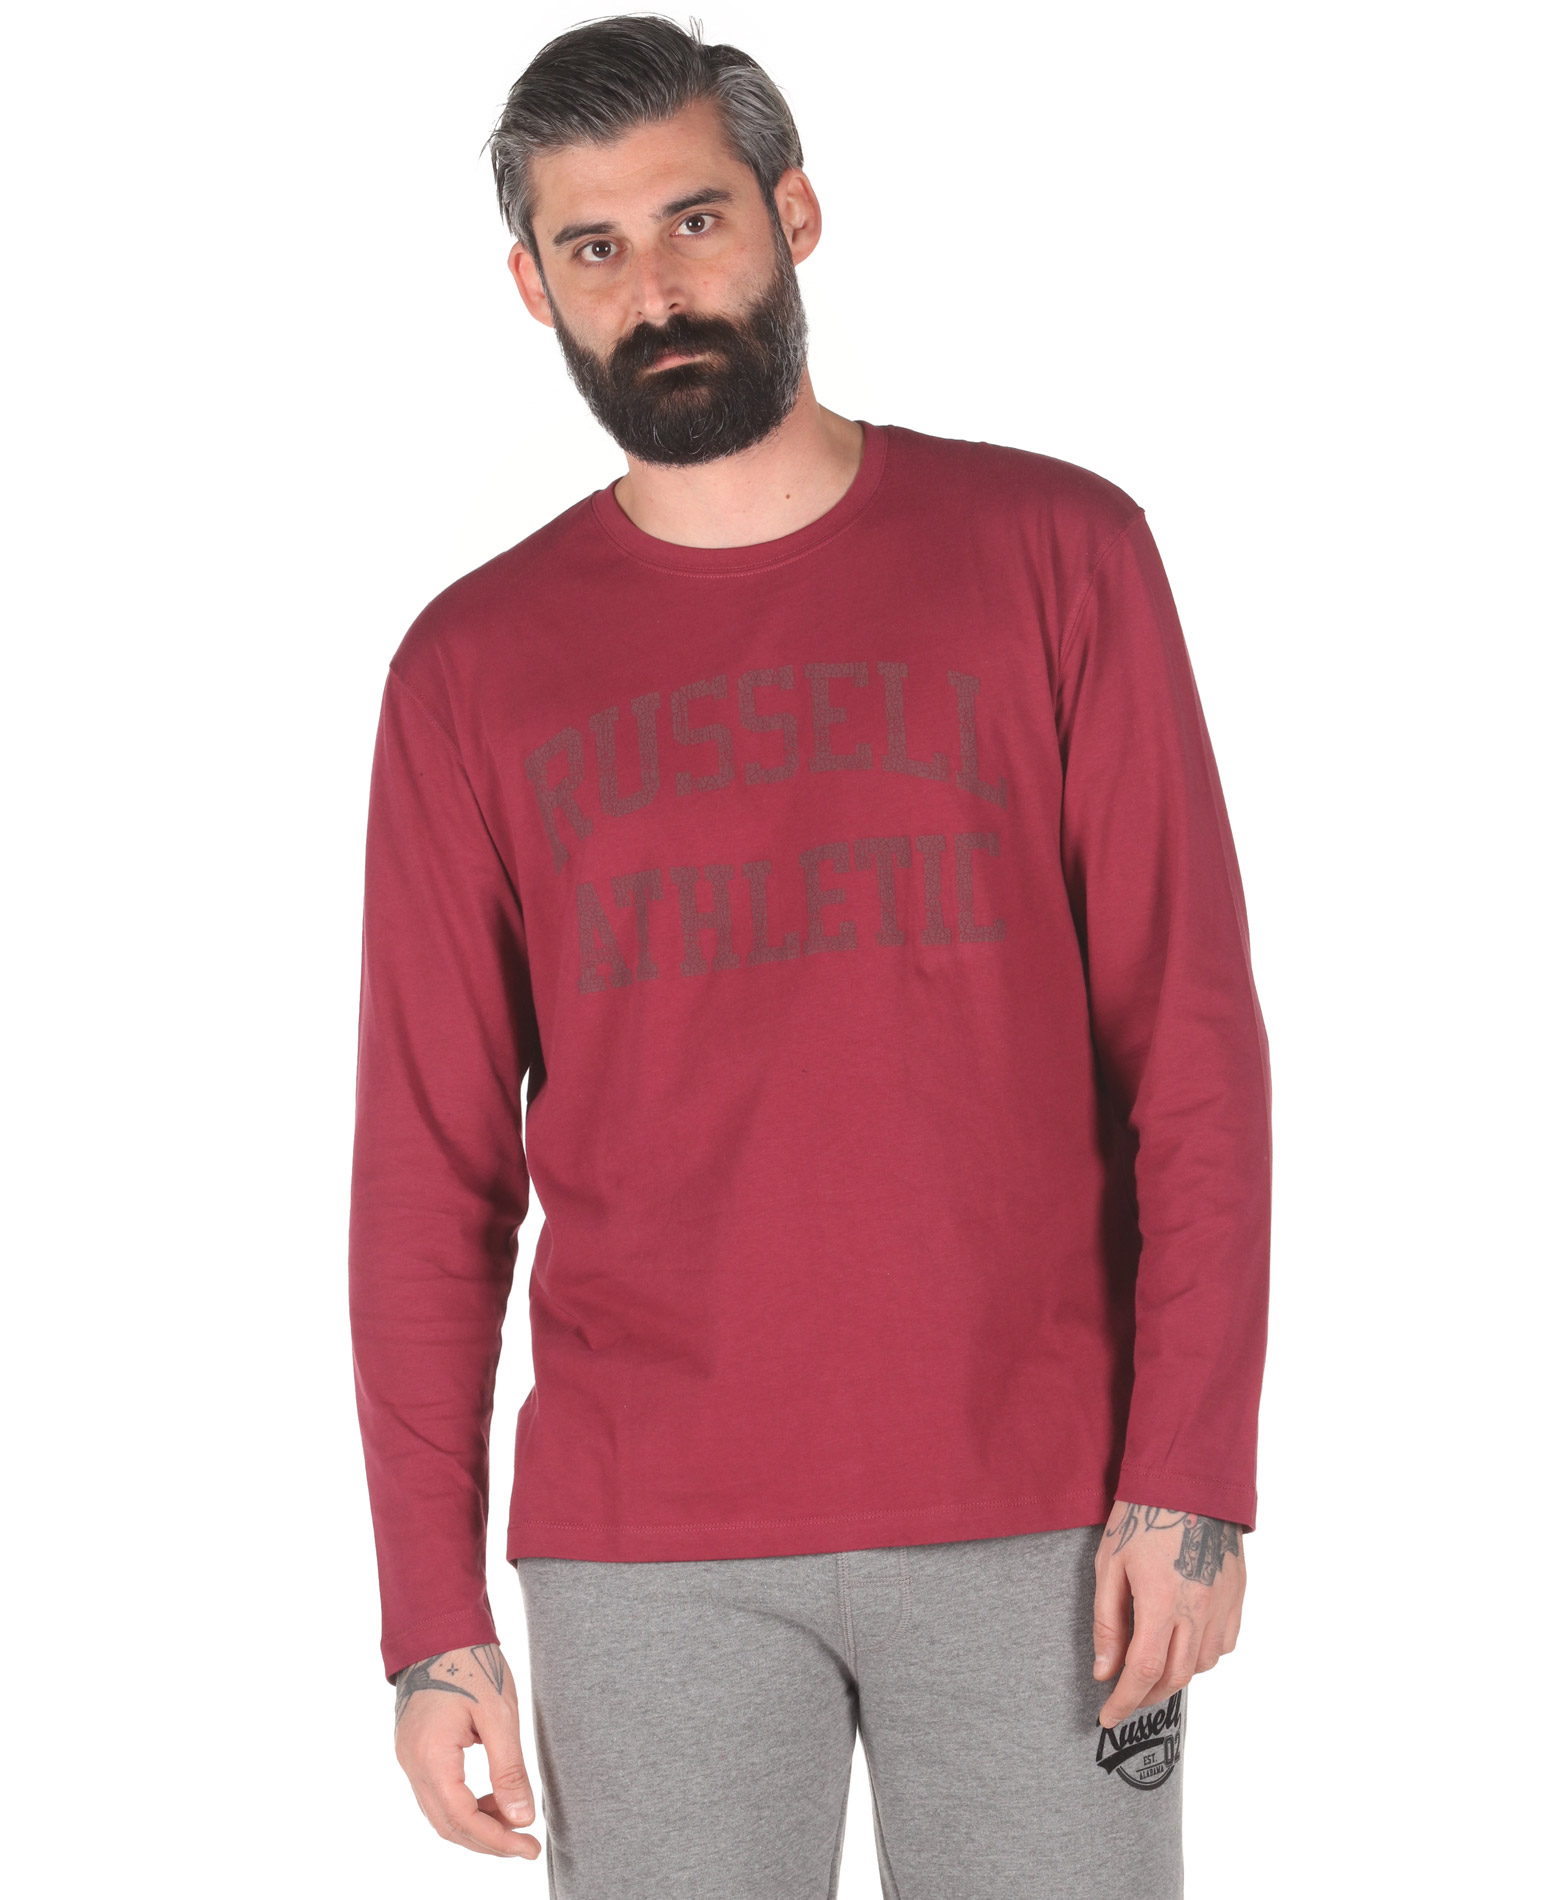 Russell Athletic L/S CREWNECK TEE SHIRT A0-086-2-469 Μπορντό